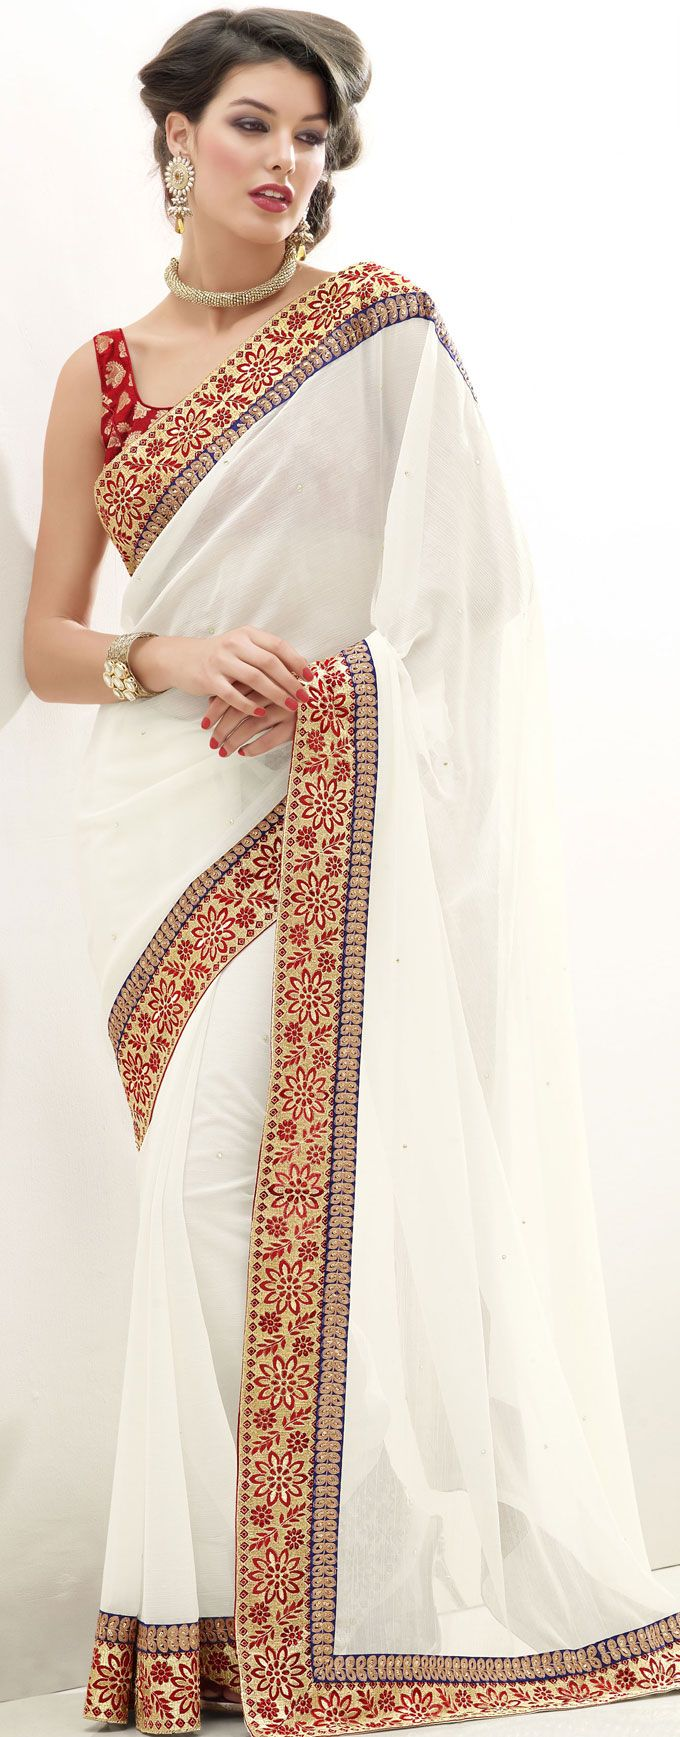 Off #White #Chiffon #Saree Blouse Design | @ $55.25 | Shop It Here: http://www.sareegalaxy.com/pages/itemlarge.aspx?itemcode=SHK6G17